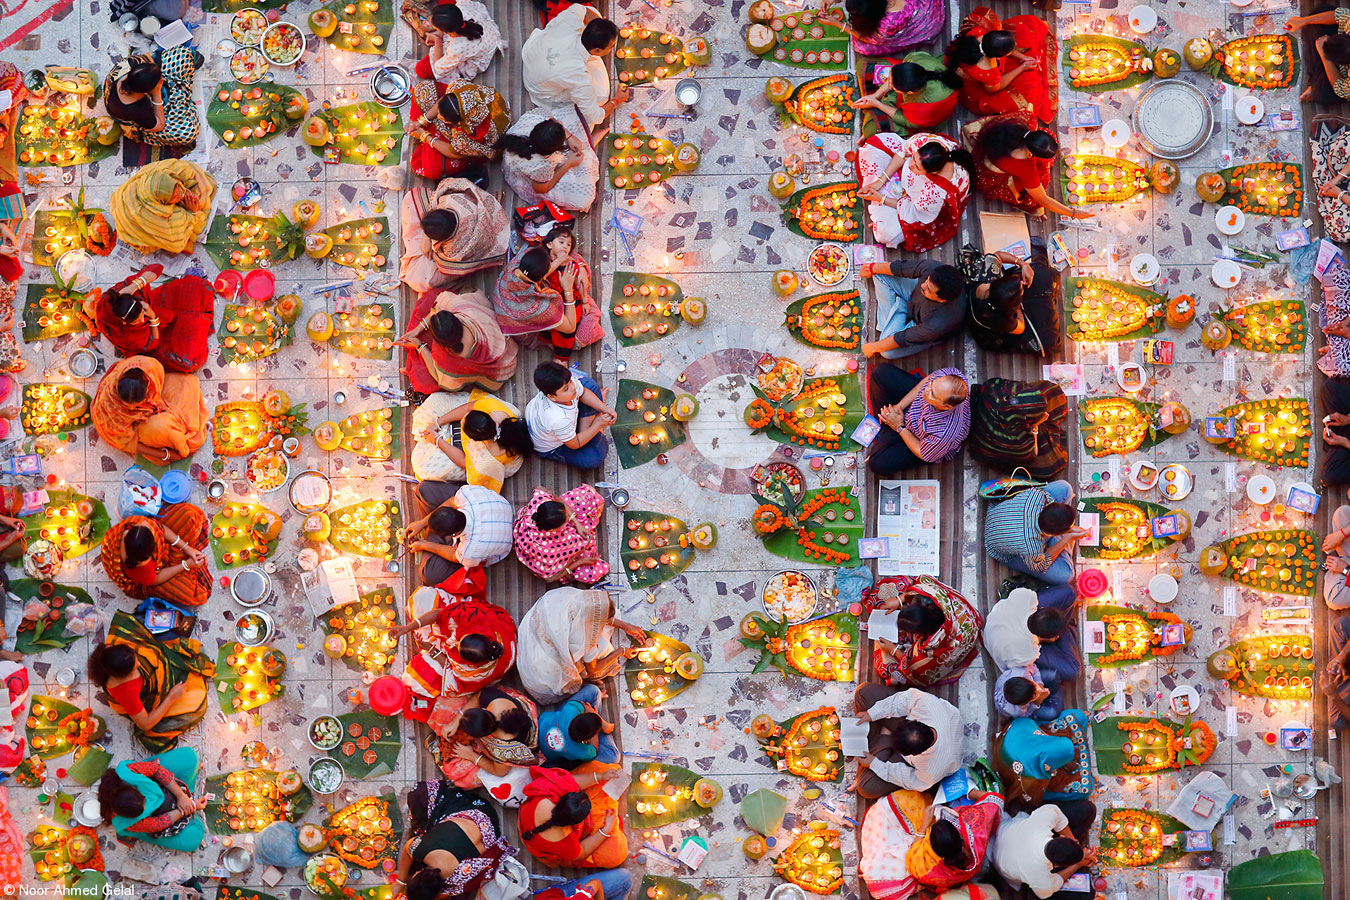 Praying with Food, © Noor Ahmed Gelal, Bangladesh, 1st Place, Food for Celebration, Pink Lady Food Photographer of the Year